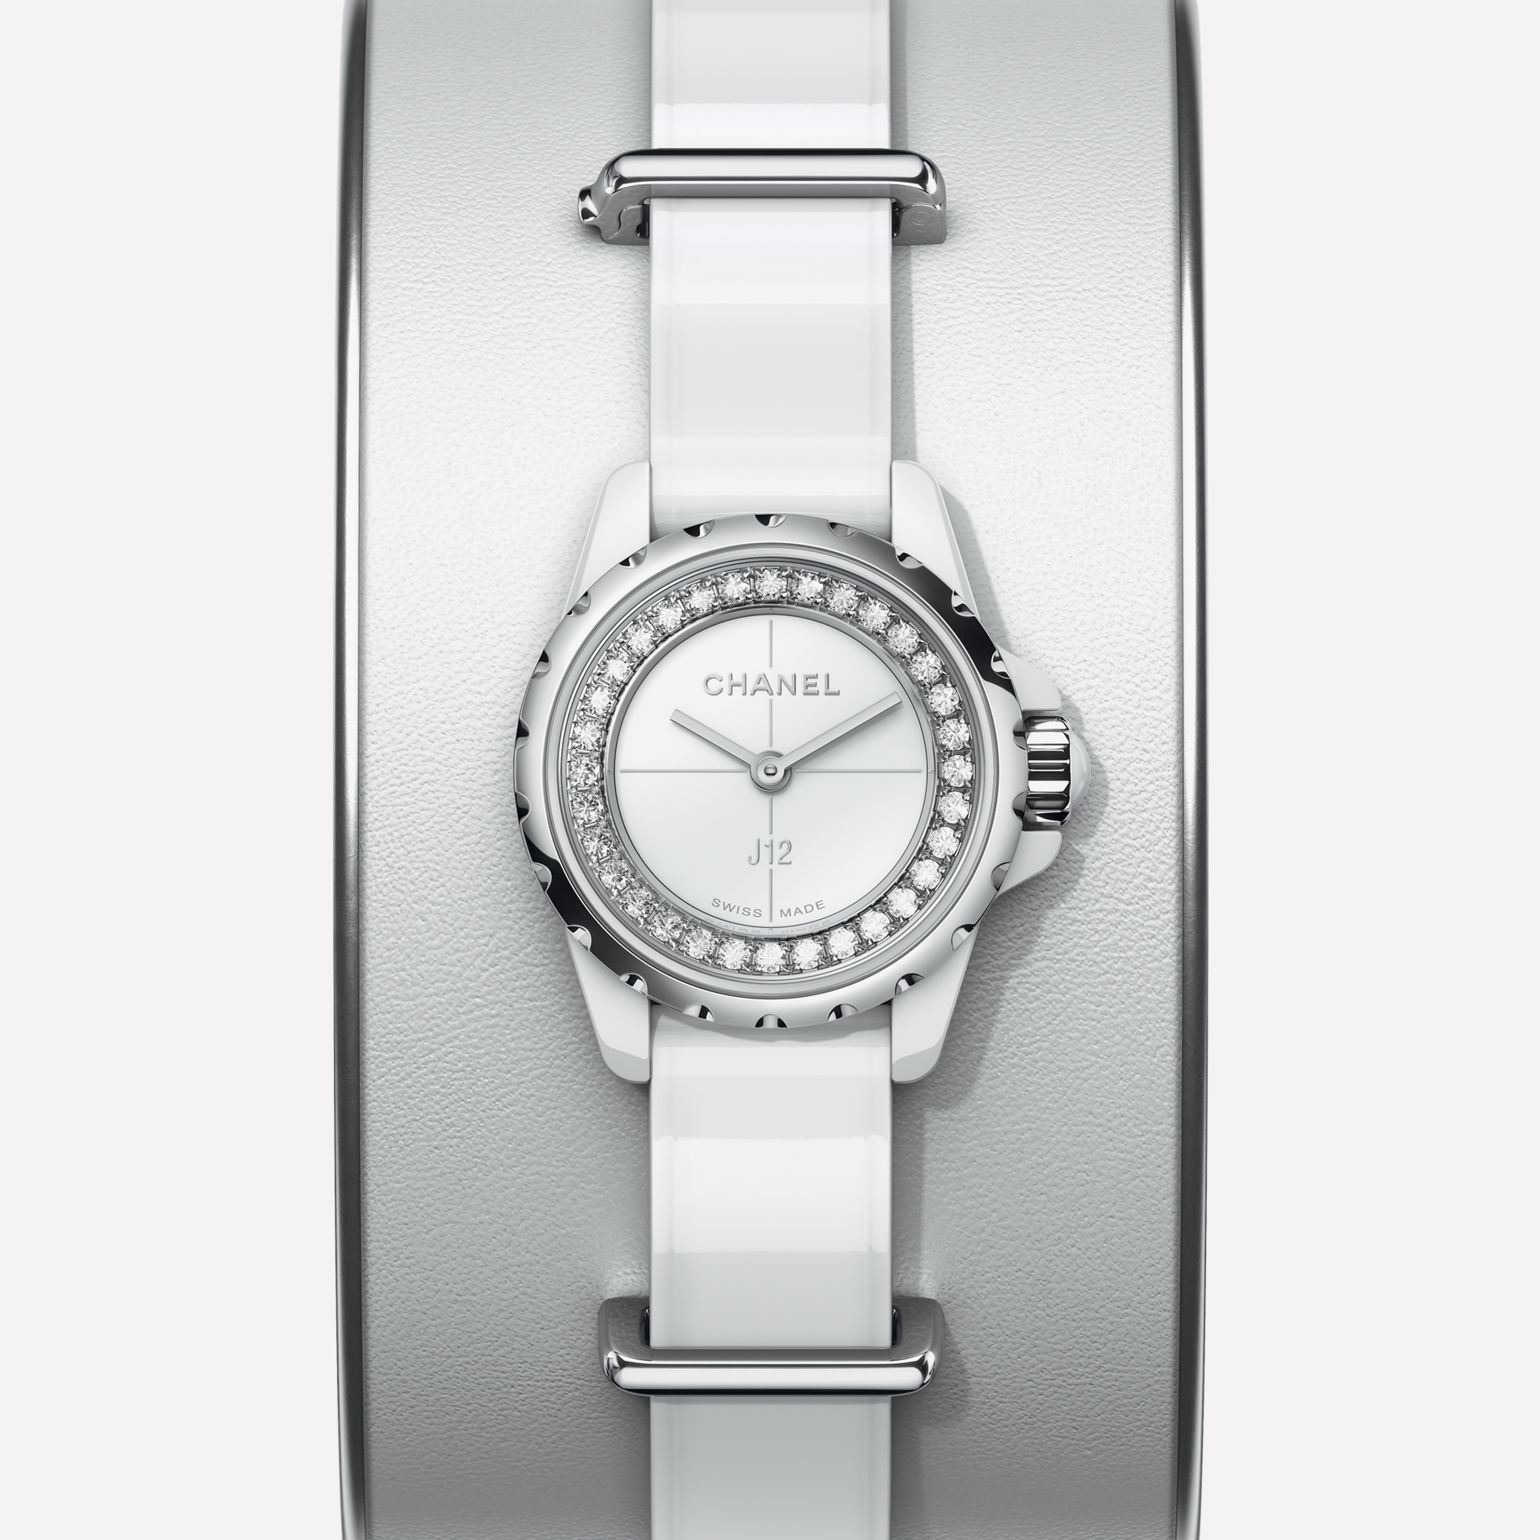 J12·XS Small cuff in white leather, white ceramic and steel, flange set with diamonds